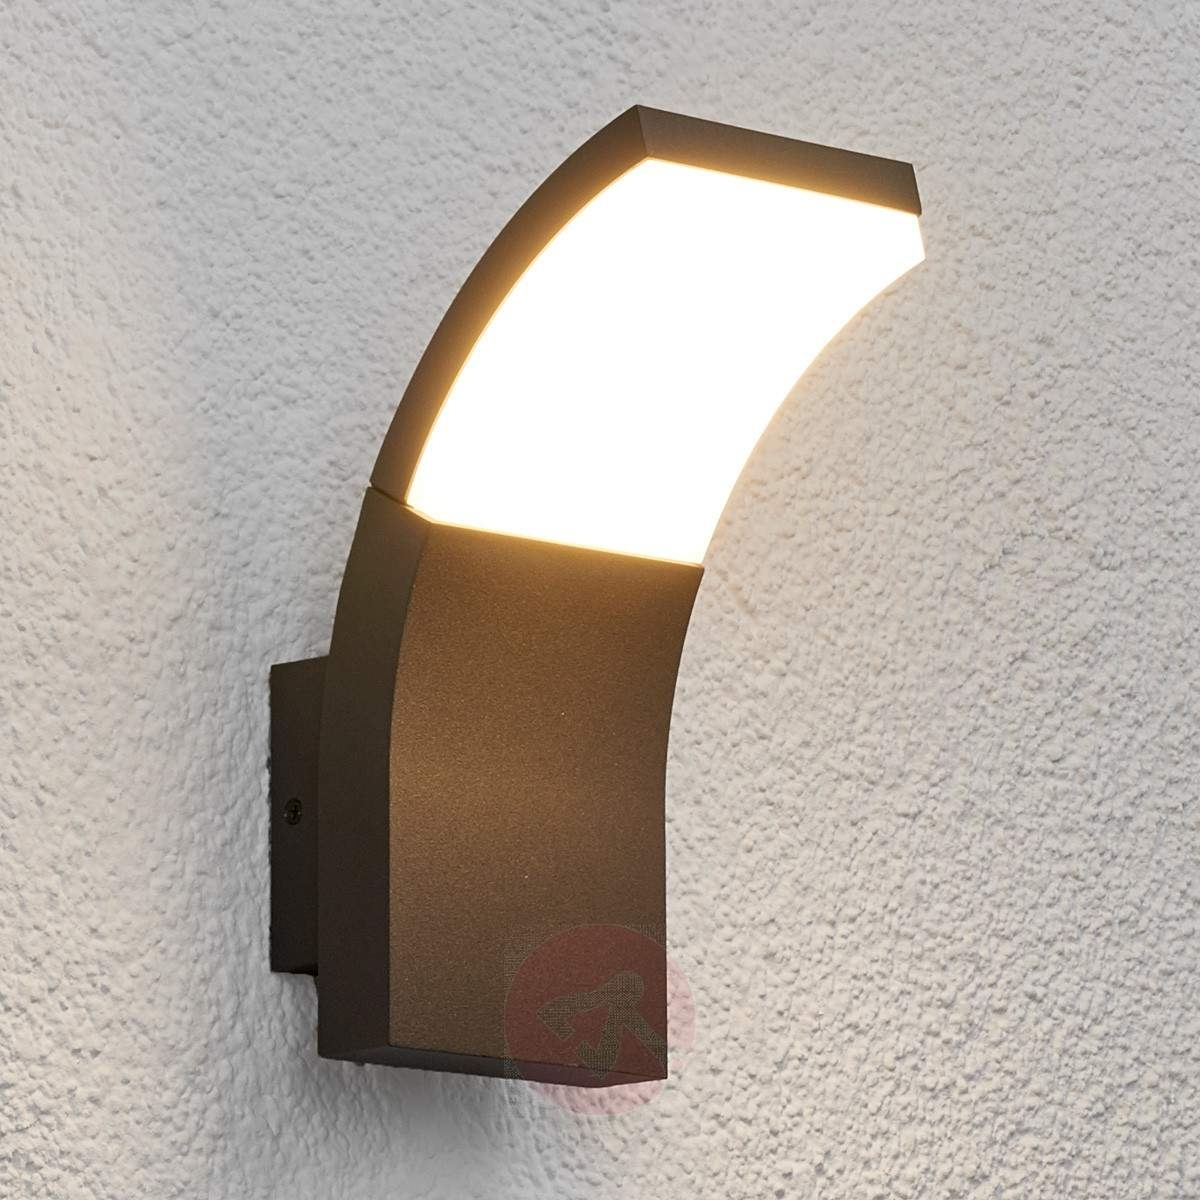 Famous Led Outdoor Wall Light Timm Lights Co Uk Brilliant Led In 4 For  Outdoor Wall